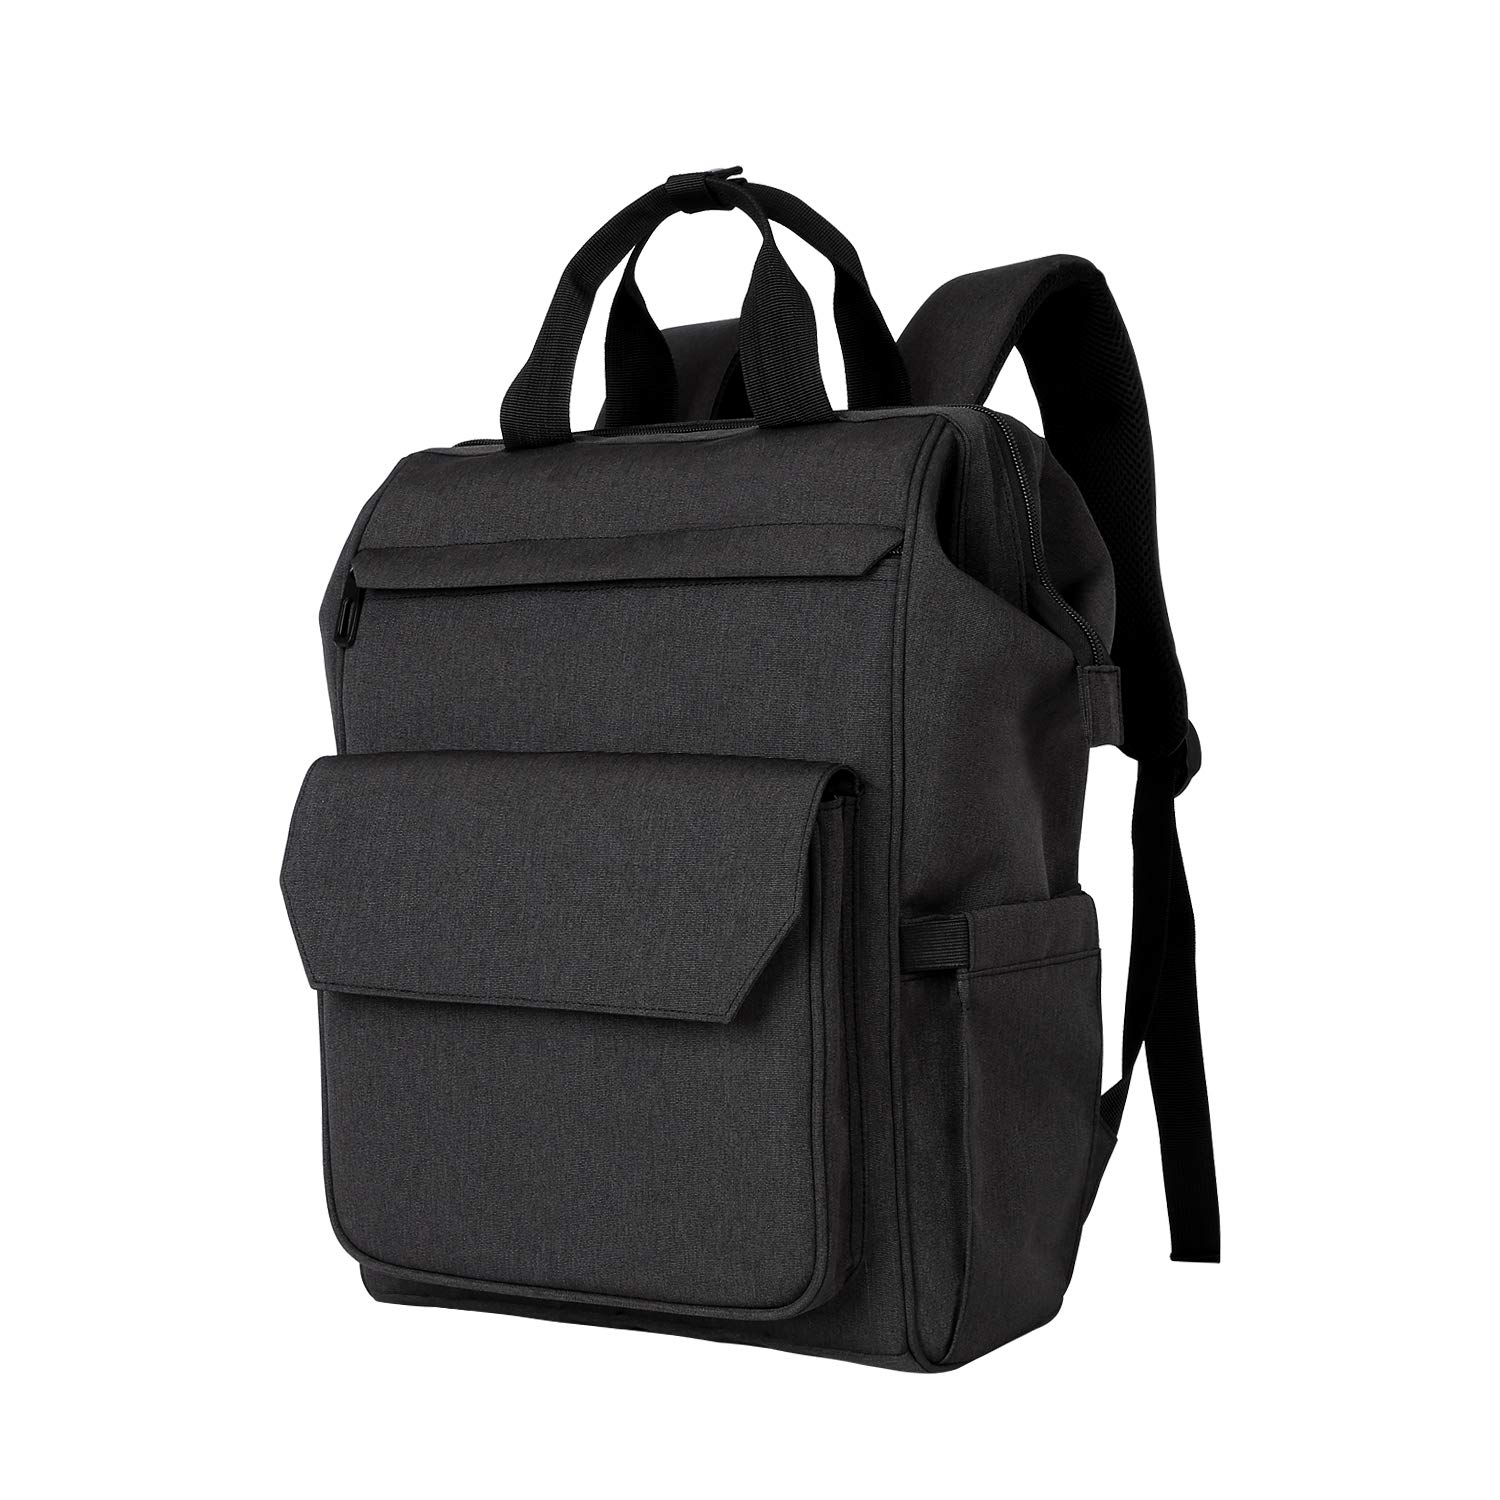 Great backpack, lots of pockets and I love the wide open top, a new favorite